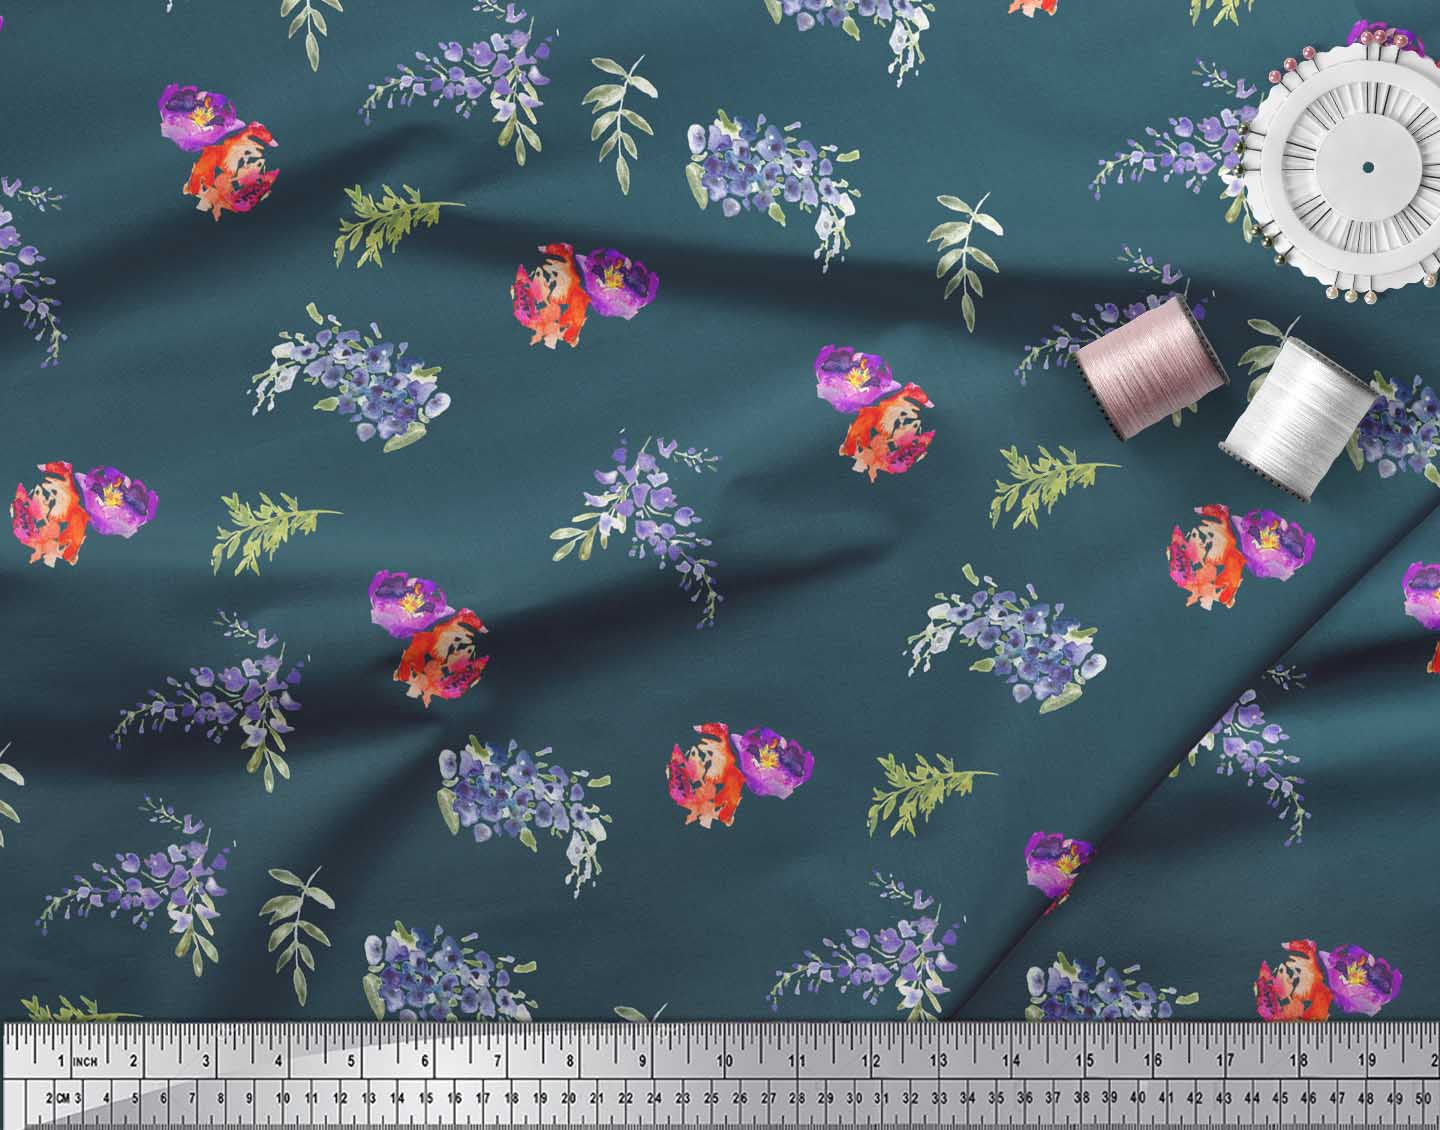 Soimoi-Blue-Cotton-Poplin-Fabric-Flower-amp-Leaves-Watercolor-Fabric-WHu thumbnail 3